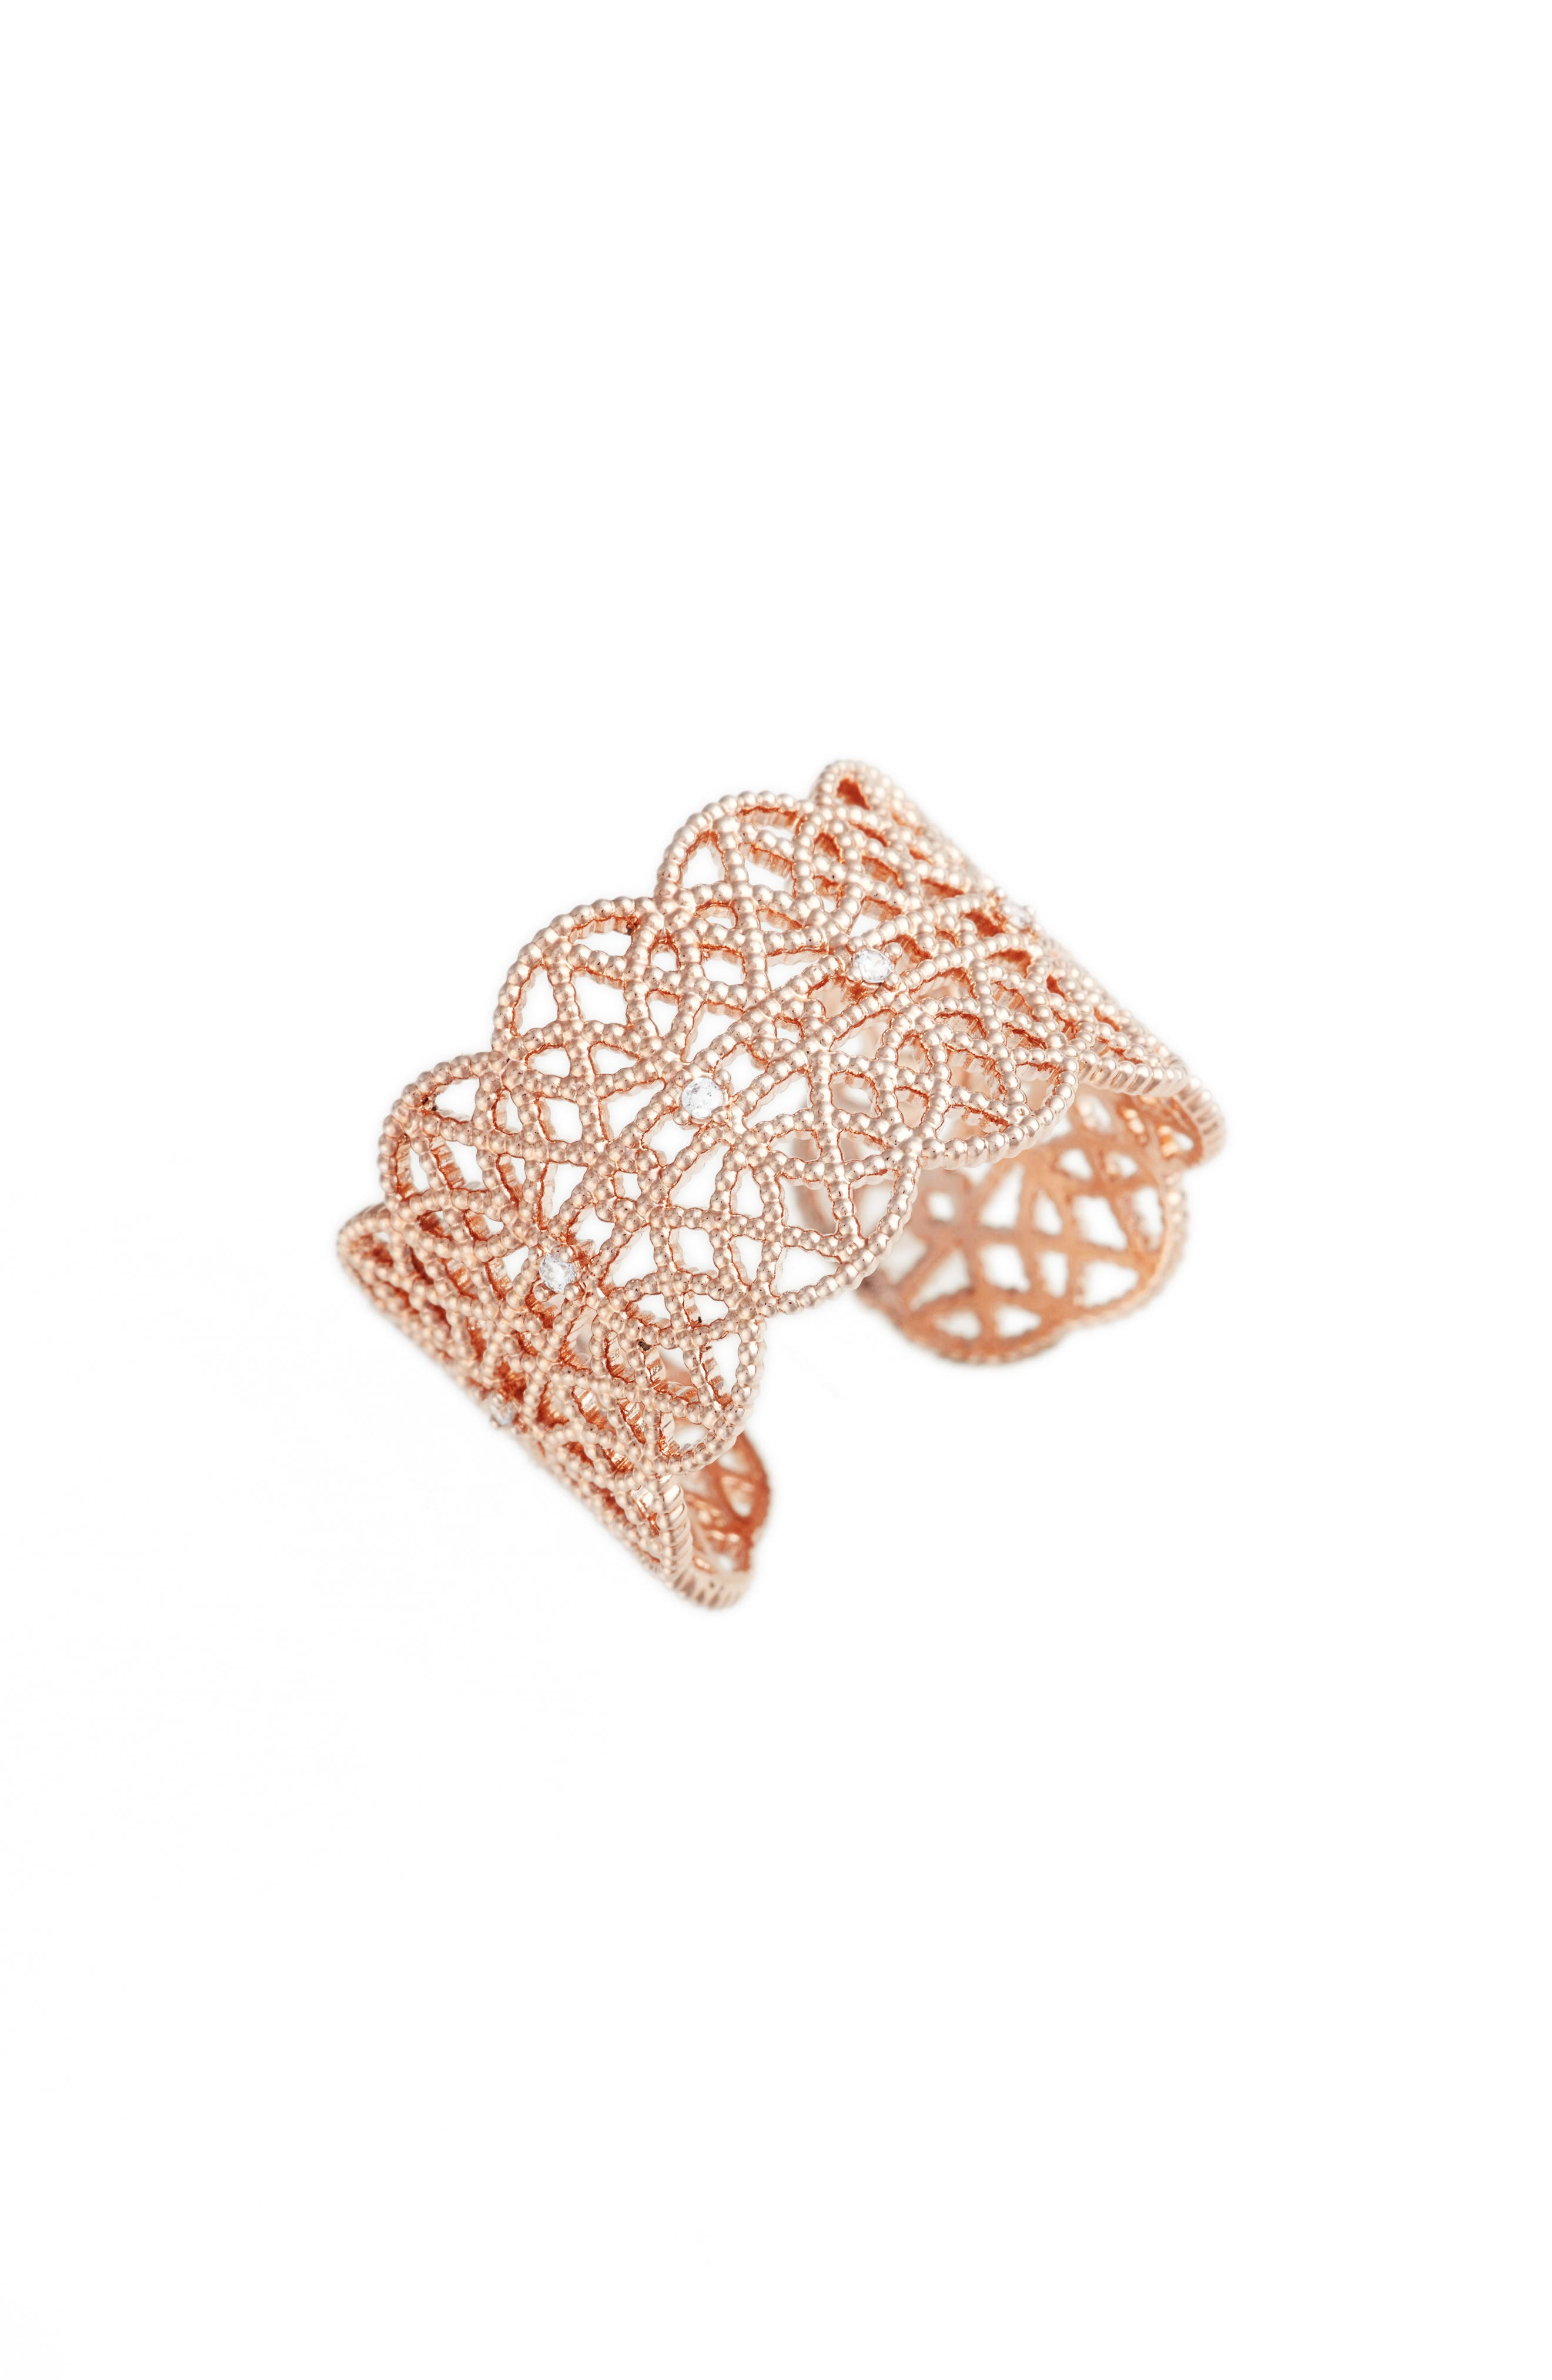 JULES SMITH Pavé Lace Cuff Ring, Main, color, 712